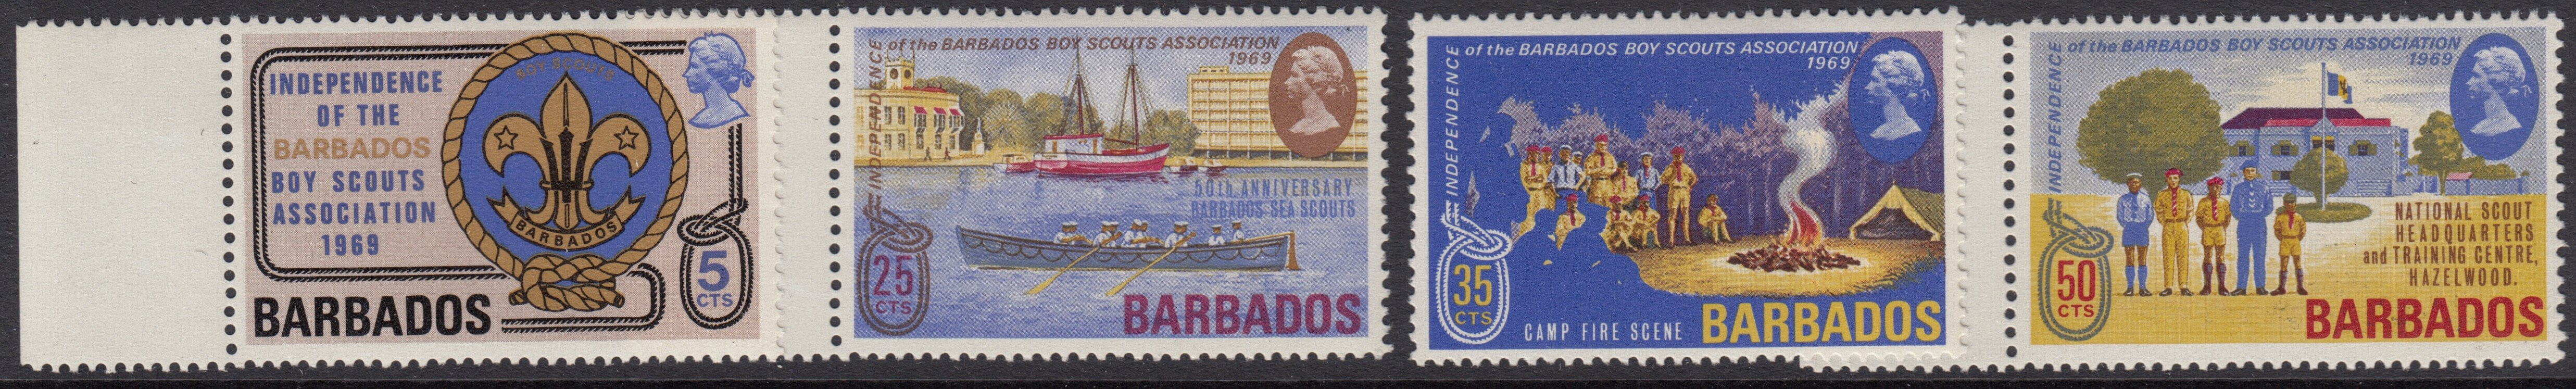 Barbados SG393-396 | Independence of Barbados Boy Scouts Association and 50th Anniversary of Barbados Sea Scouts